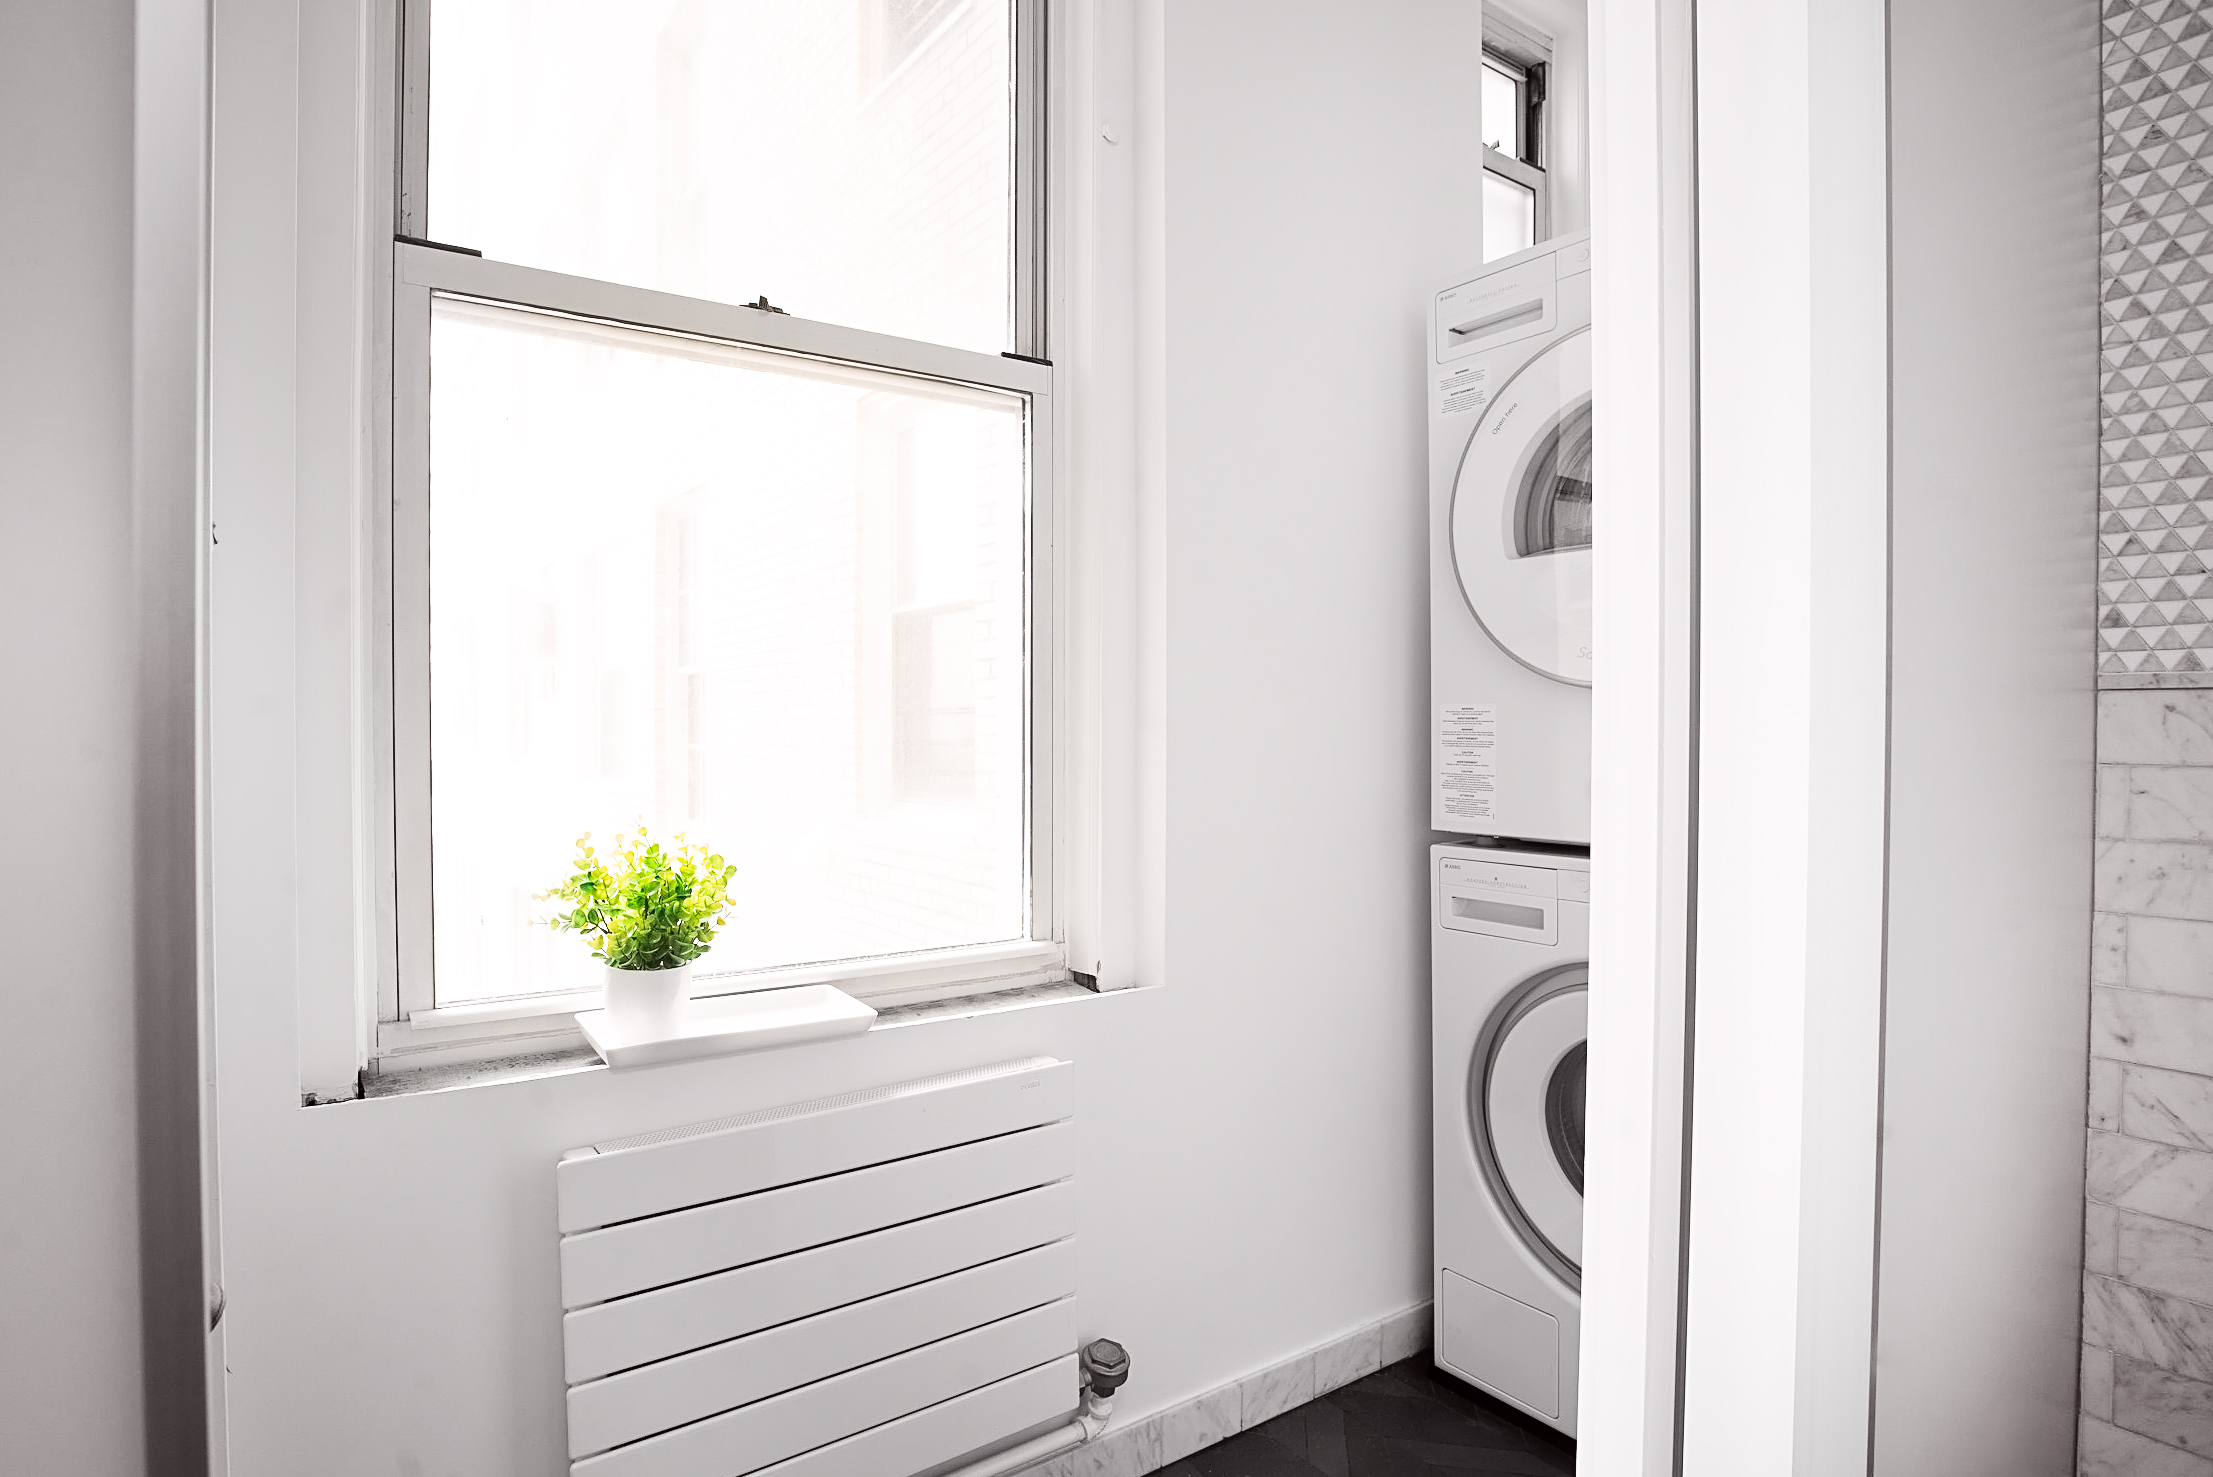 Stacking-White-Laundry-Machine-Bathroom-Brooklyn-JMorris-Design.jpg